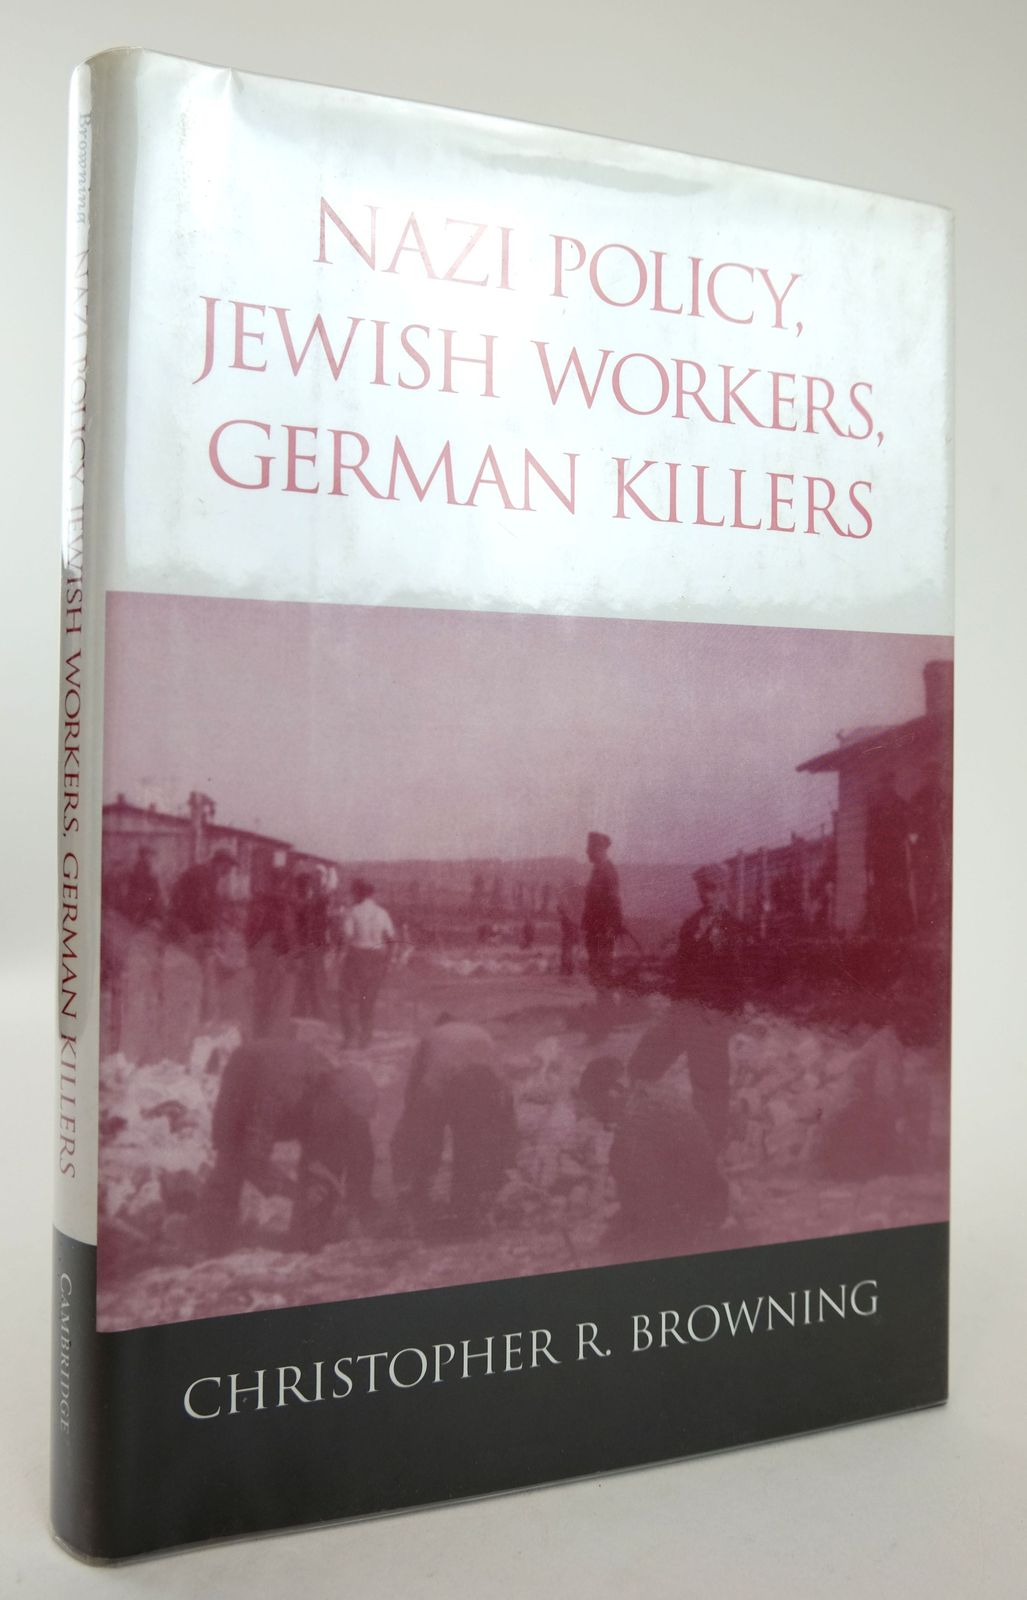 Photo of NAZI POLICY, JEWISH WORKERS, GERMAN KILLERS written by Browning, Christopher R. published by Cambridge University Press (STOCK CODE: 1818903)  for sale by Stella & Rose's Books